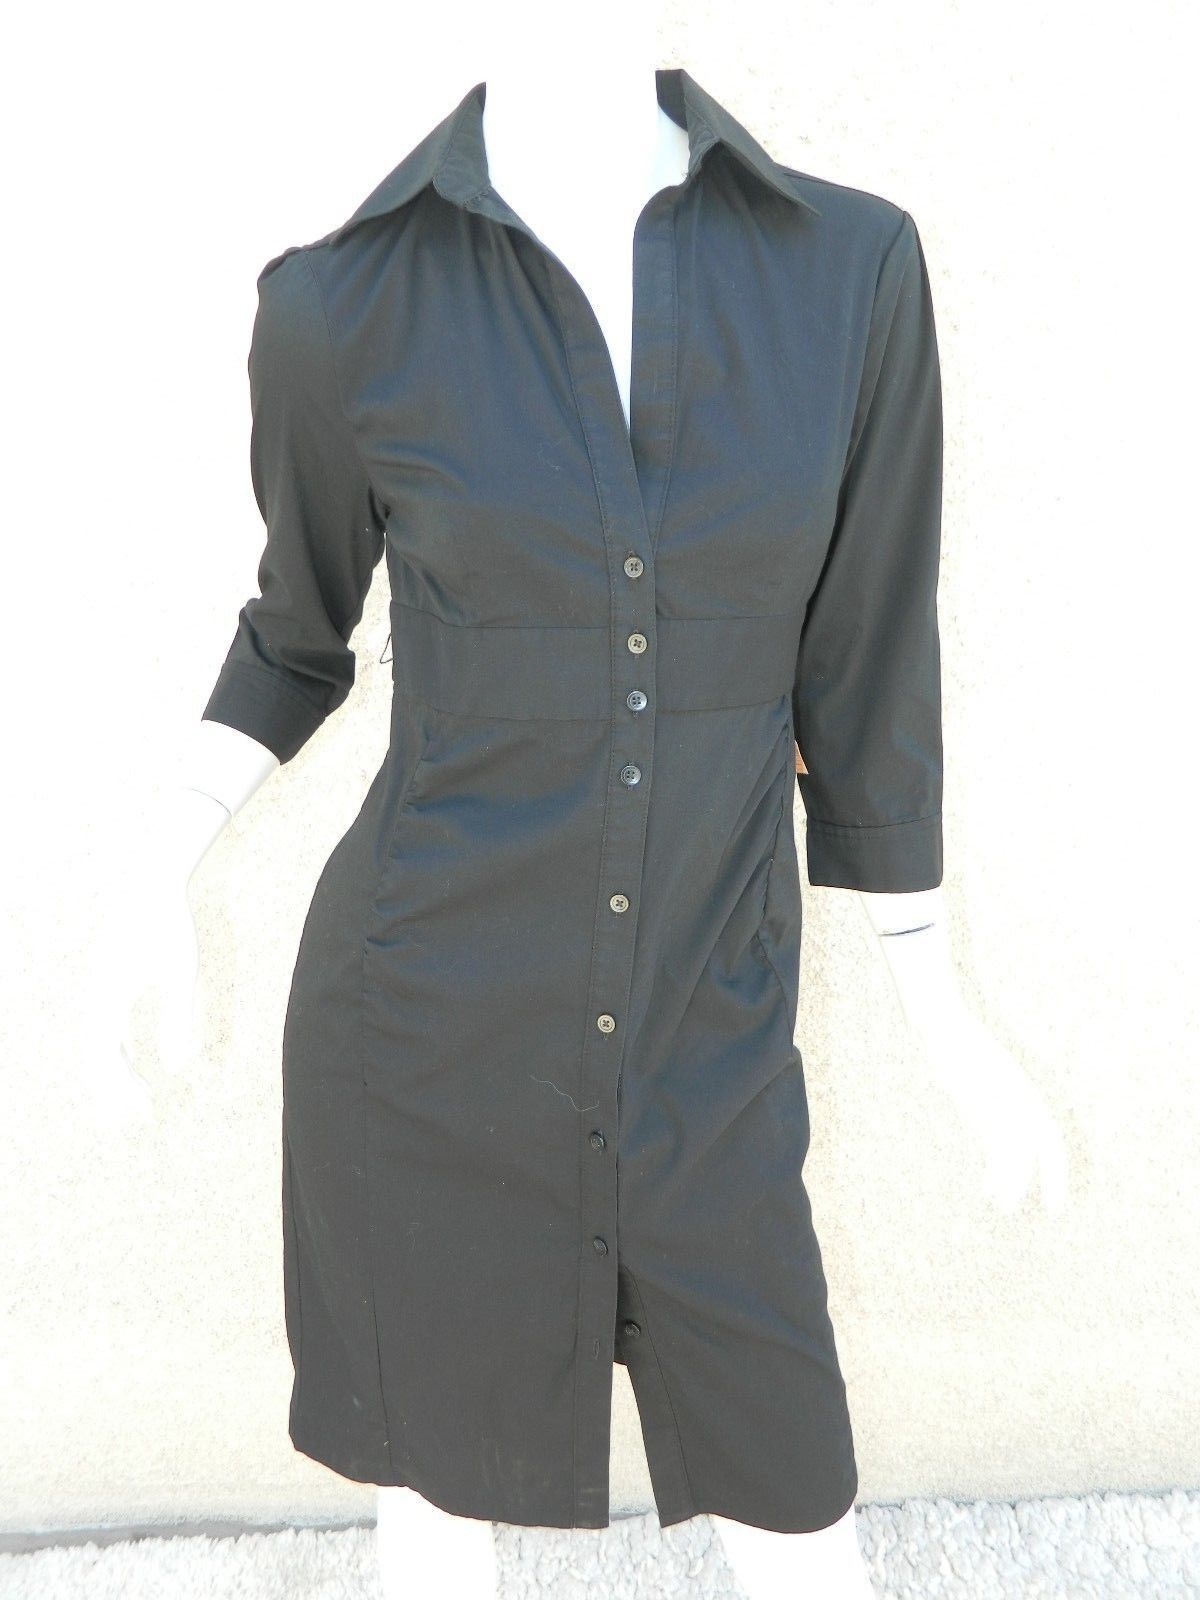 EXPRESS Dress Navy Blue Classic Shirt 3/4 Sleeve Dress Workwear Career Sz 6